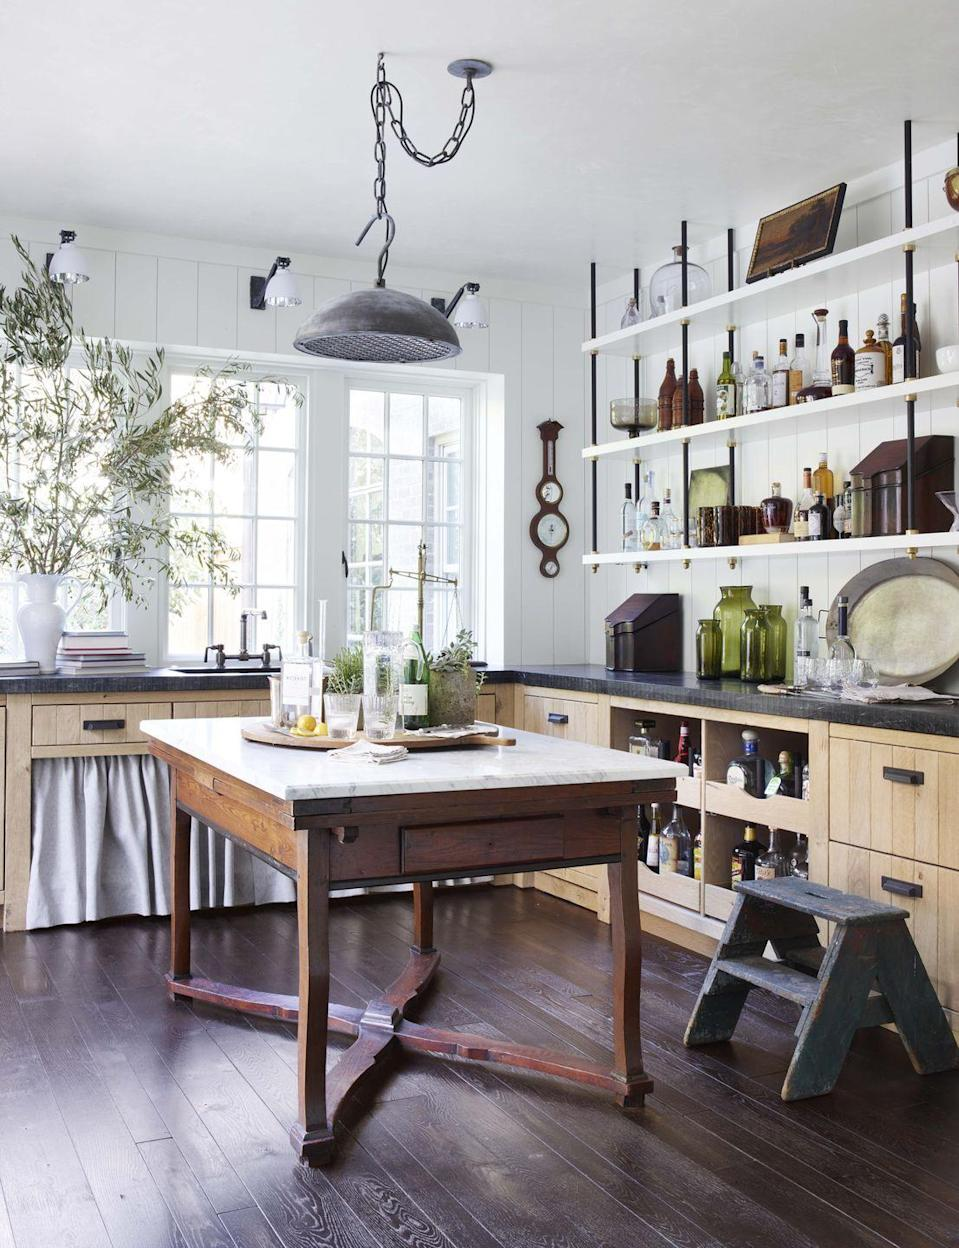 """<p>Wire-brushed French oak cabinetry, oiled soapstone counters, and suspended shelving with brass detailing bring charming utility to <a href=""""https://www.veranda.com/decorating-ideas/a28577679/amy-morris-atlanta-house-tour/"""" rel=""""nofollow noopener"""" target=""""_blank"""" data-ylk=""""slk:this Atlanta home's scullery, designed by Amy Morris and D. Stanley Dixon"""" class=""""link rapid-noclick-resp"""">this Atlanta home's scullery, designed by Amy Morris and D. Stanley Dixon</a>. Under-sink storage is concealed with a table skirt. Custom marble-top worktable, <a href=""""https://www.bdjeffries.com/"""" rel=""""nofollow noopener"""" target=""""_blank"""" data-ylk=""""slk:BD Jeffries"""" class=""""link rapid-noclick-resp"""">BD Jeffries</a></p>"""